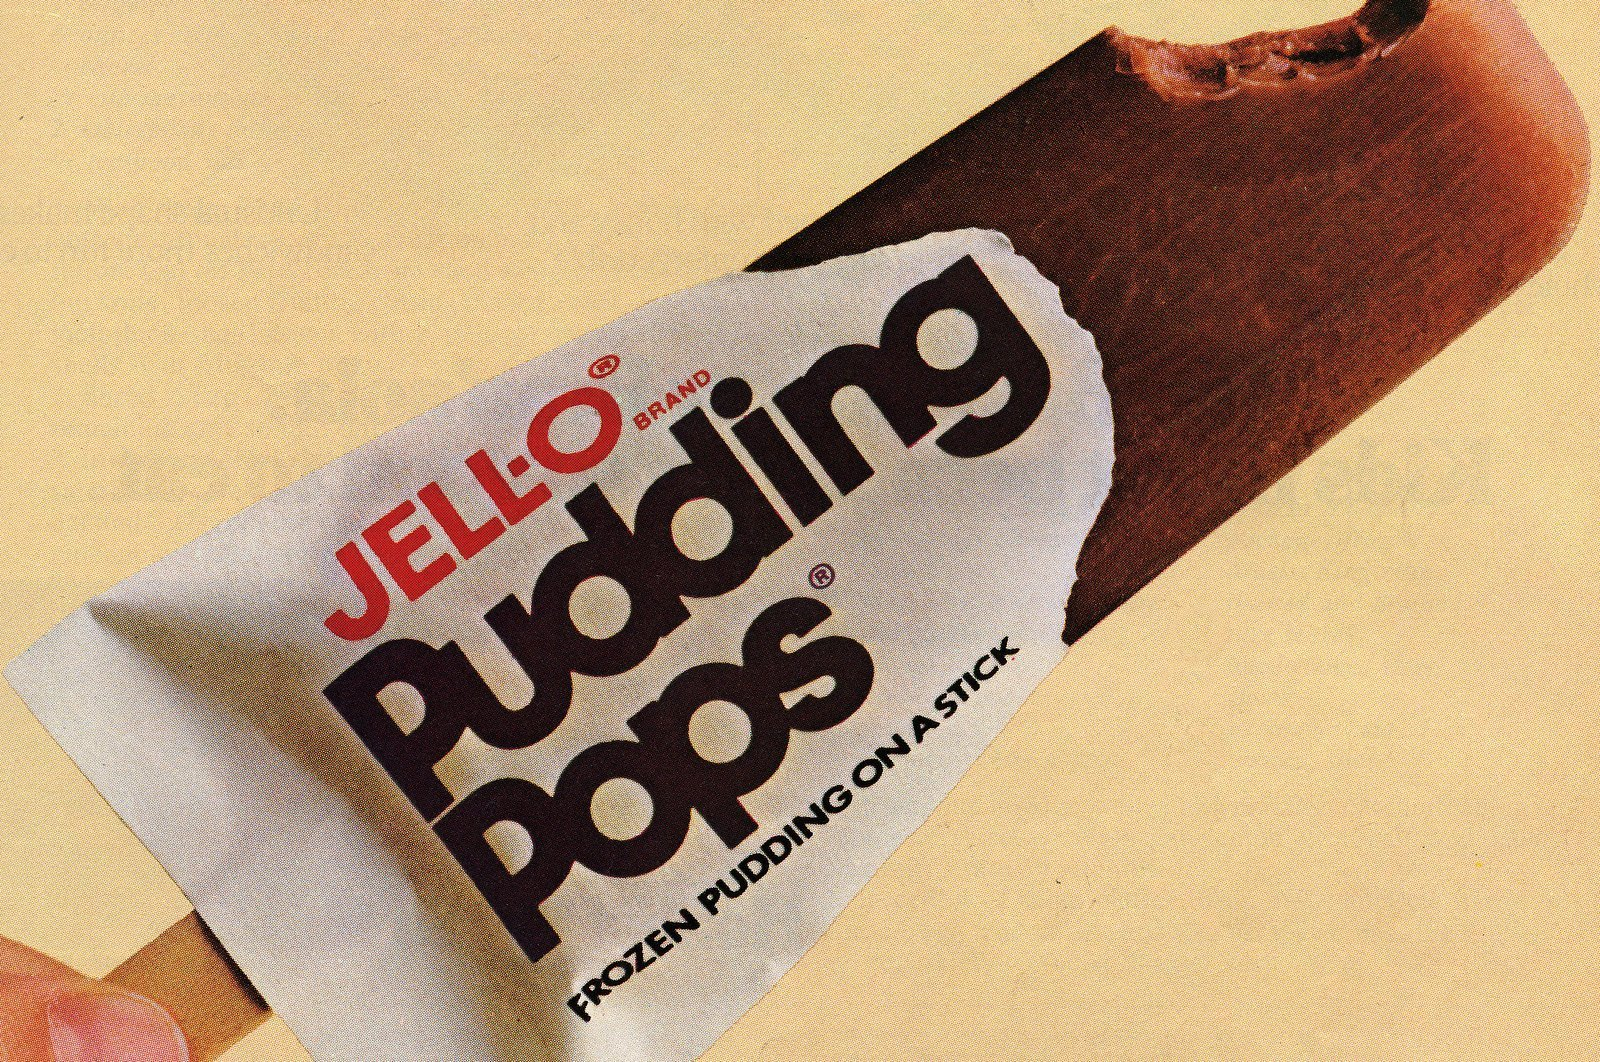 Jell-O Pudding Pops & other brands in the '80s pudding pop craze